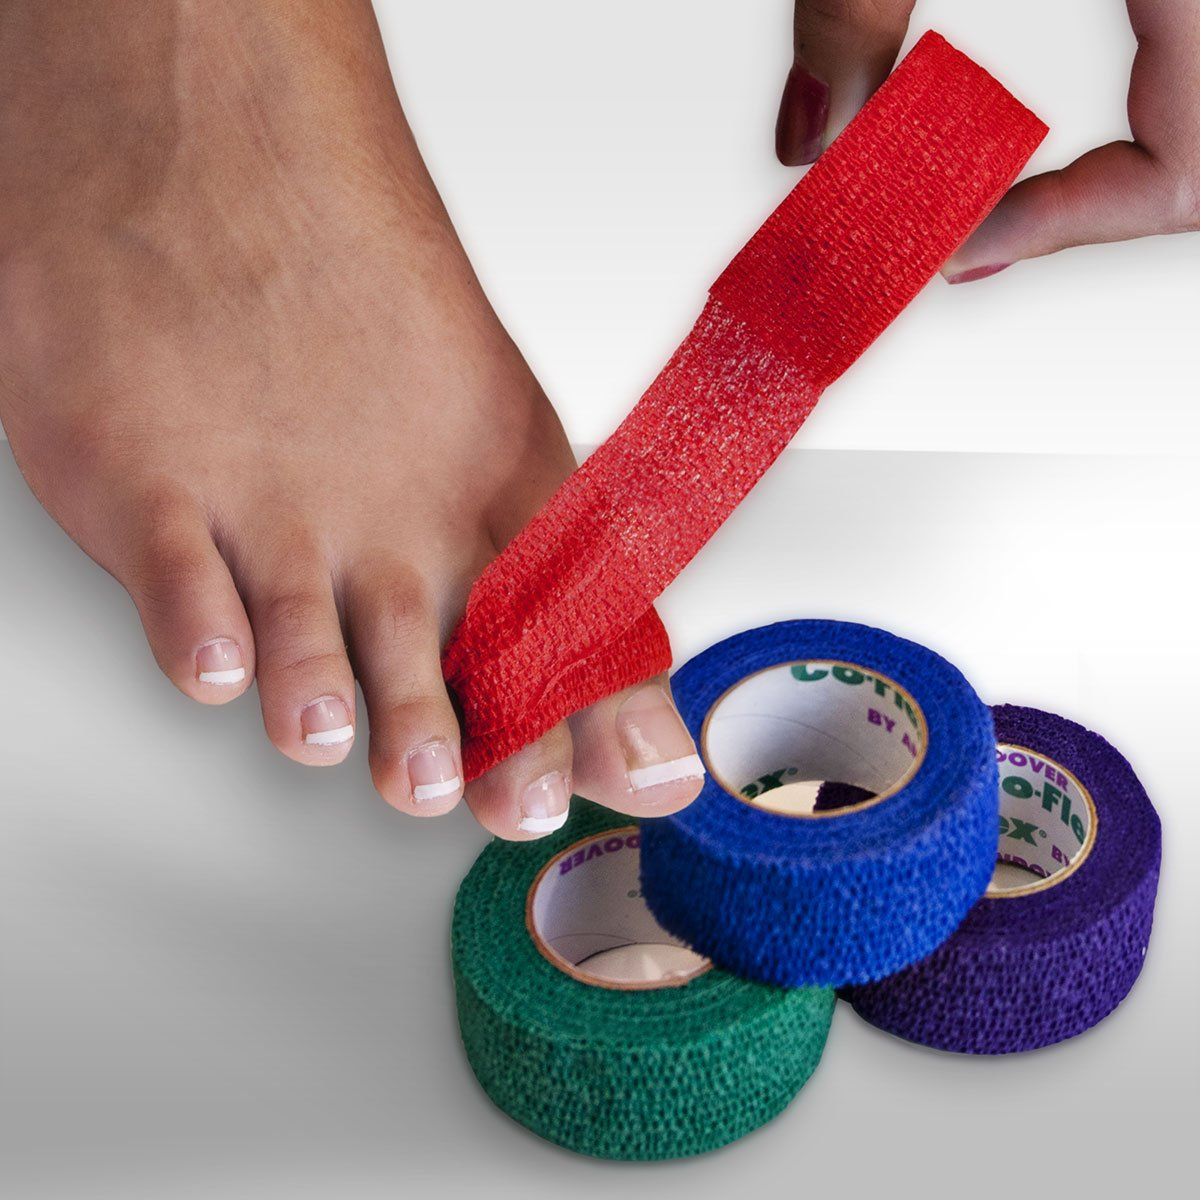 Co-Flex Bandage 1 Inch